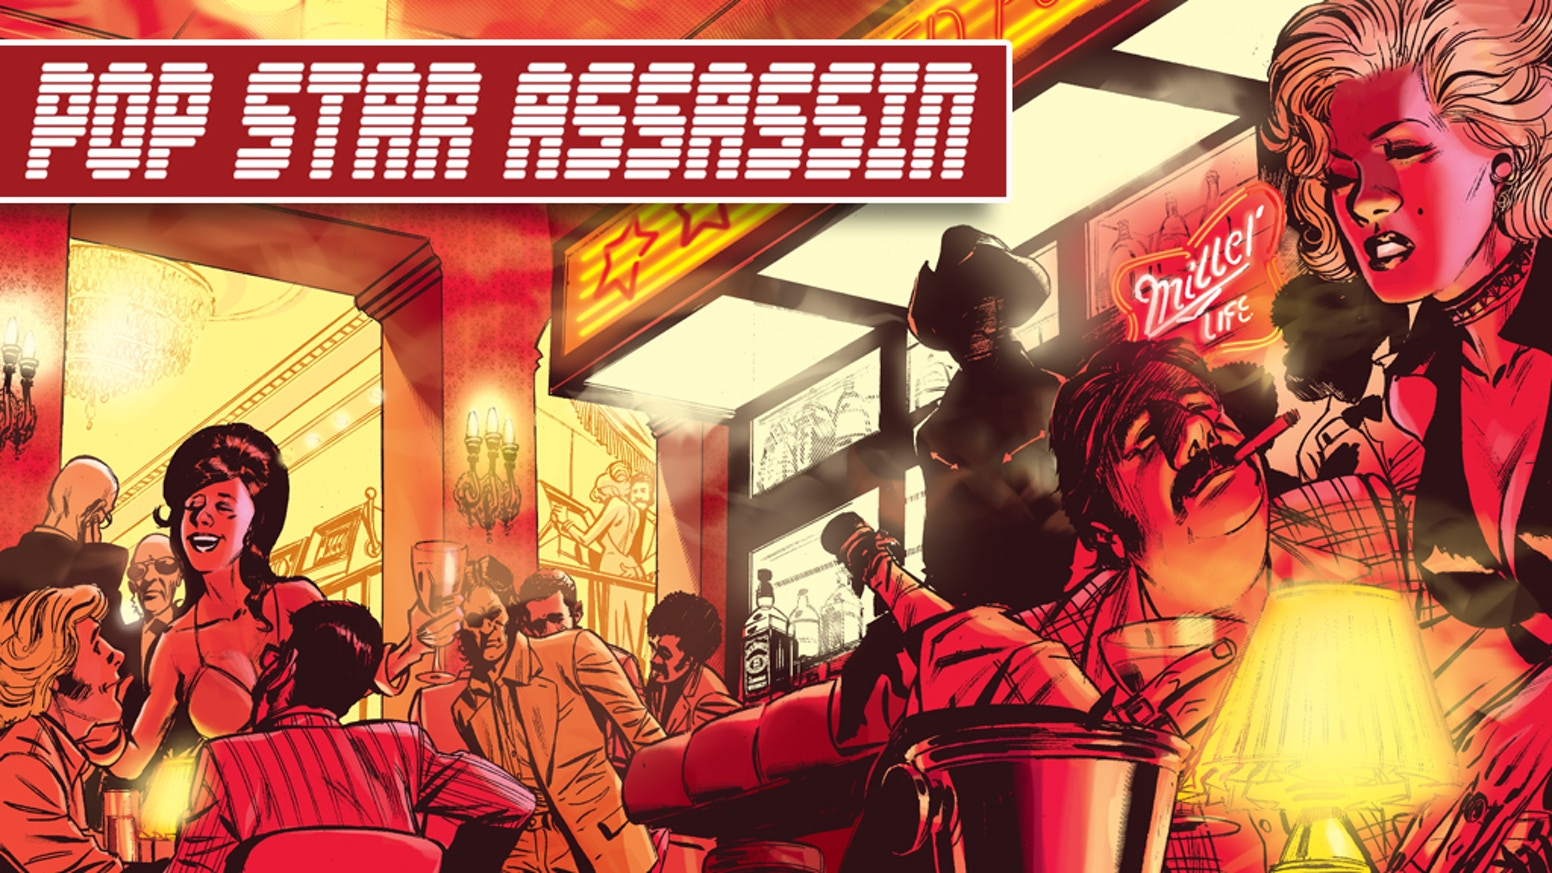 Planned as a full-color, 6 issue mini-series, Pop Star Assassin is a lysergic trip to the heart of American CONSPIRANOIA.